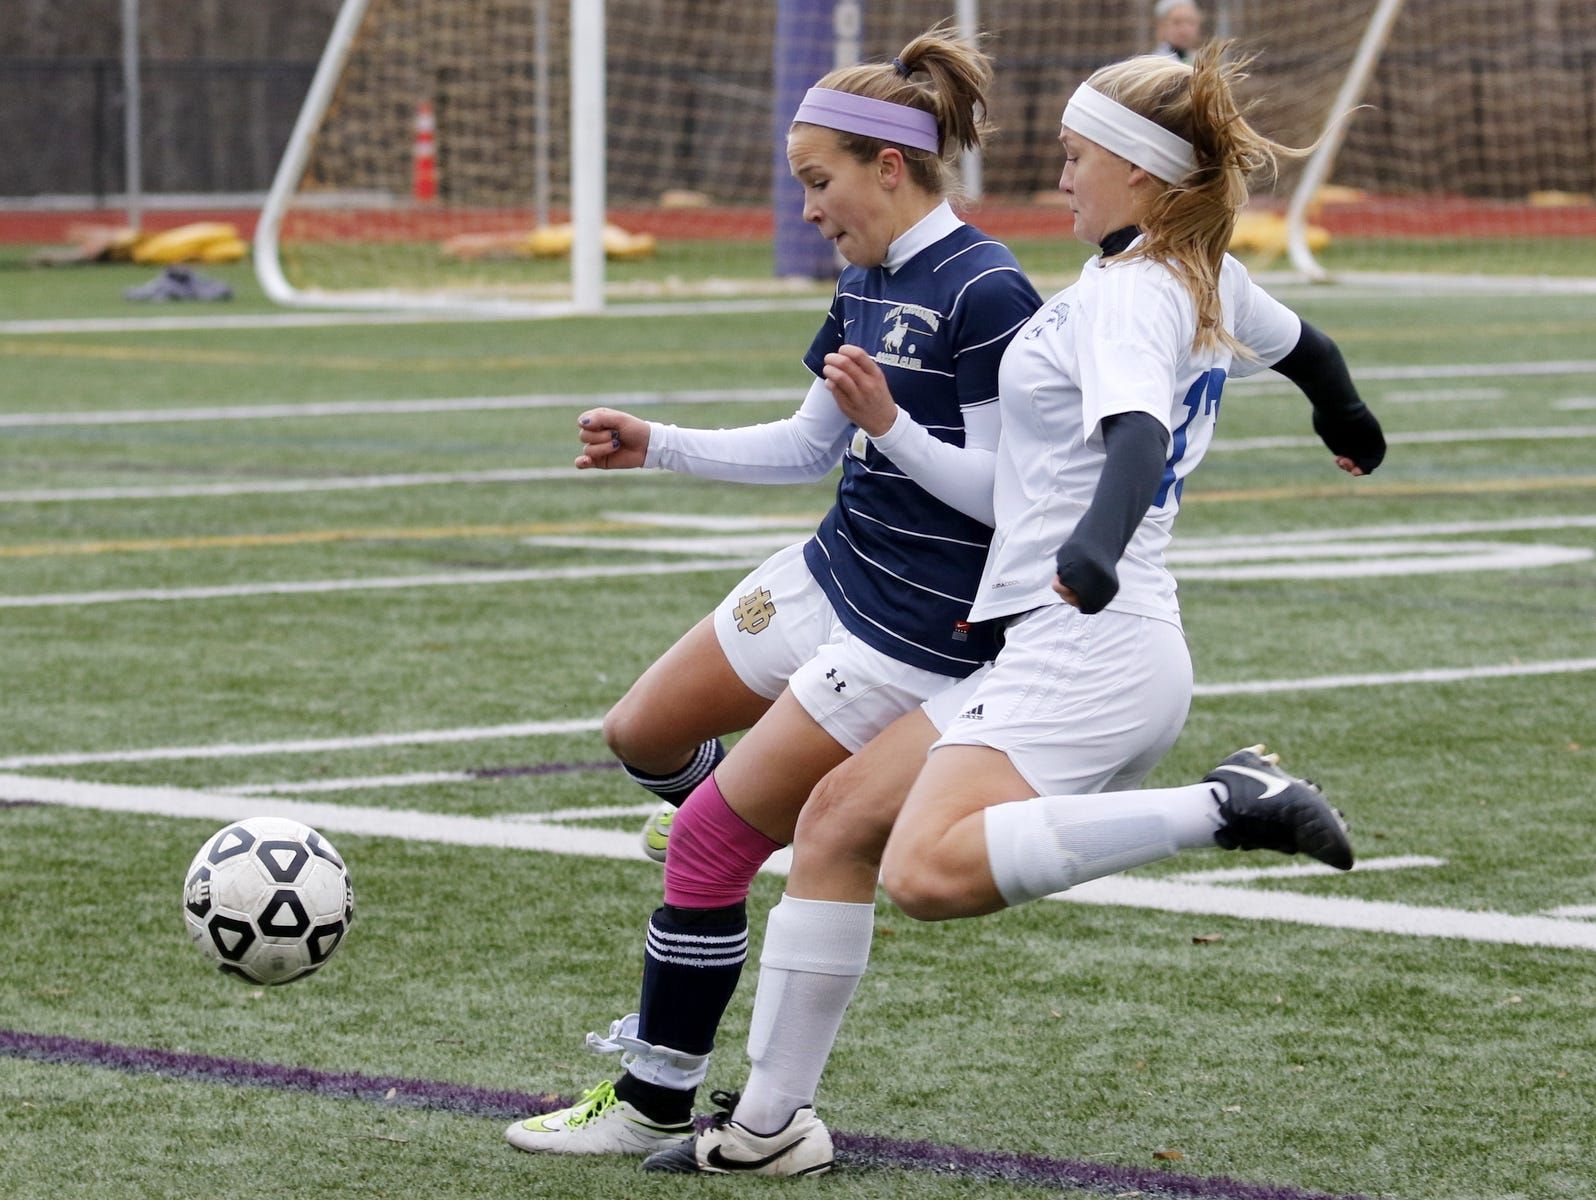 Notre Dame's Emma Booth fights for possession of the ball with Schohaire's Jaida Truesdell during Saturday's Class C state semifinal at Cortland High School.